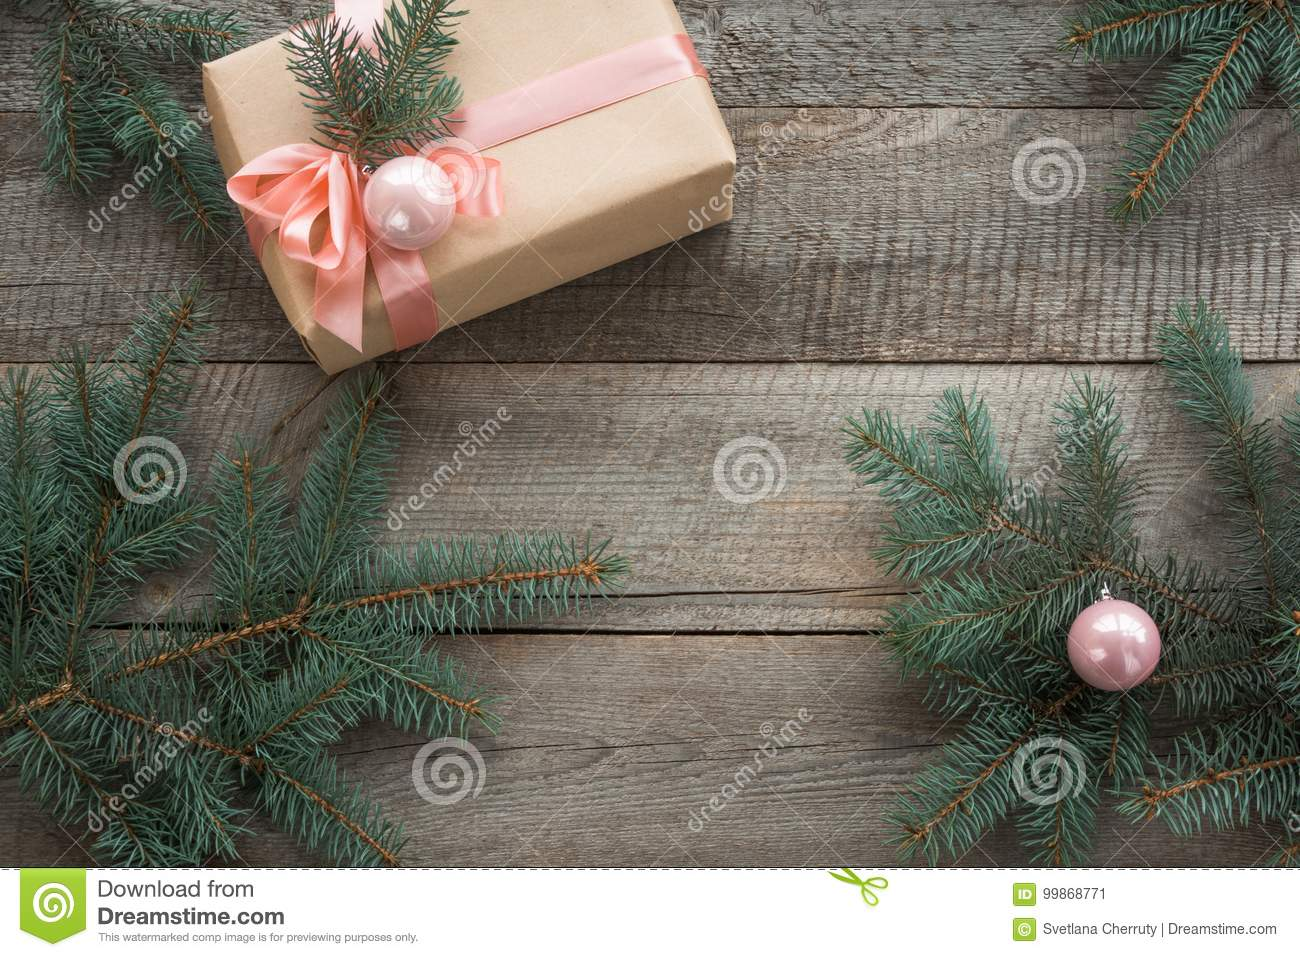 Christmas Still Life Of Giftbox With Pink Ribbon And Decor Seasonal Rustic Christmas Border Composed Of Decorative Gifts Ornamen Stock Image Image Of Beige Parchment 99868771